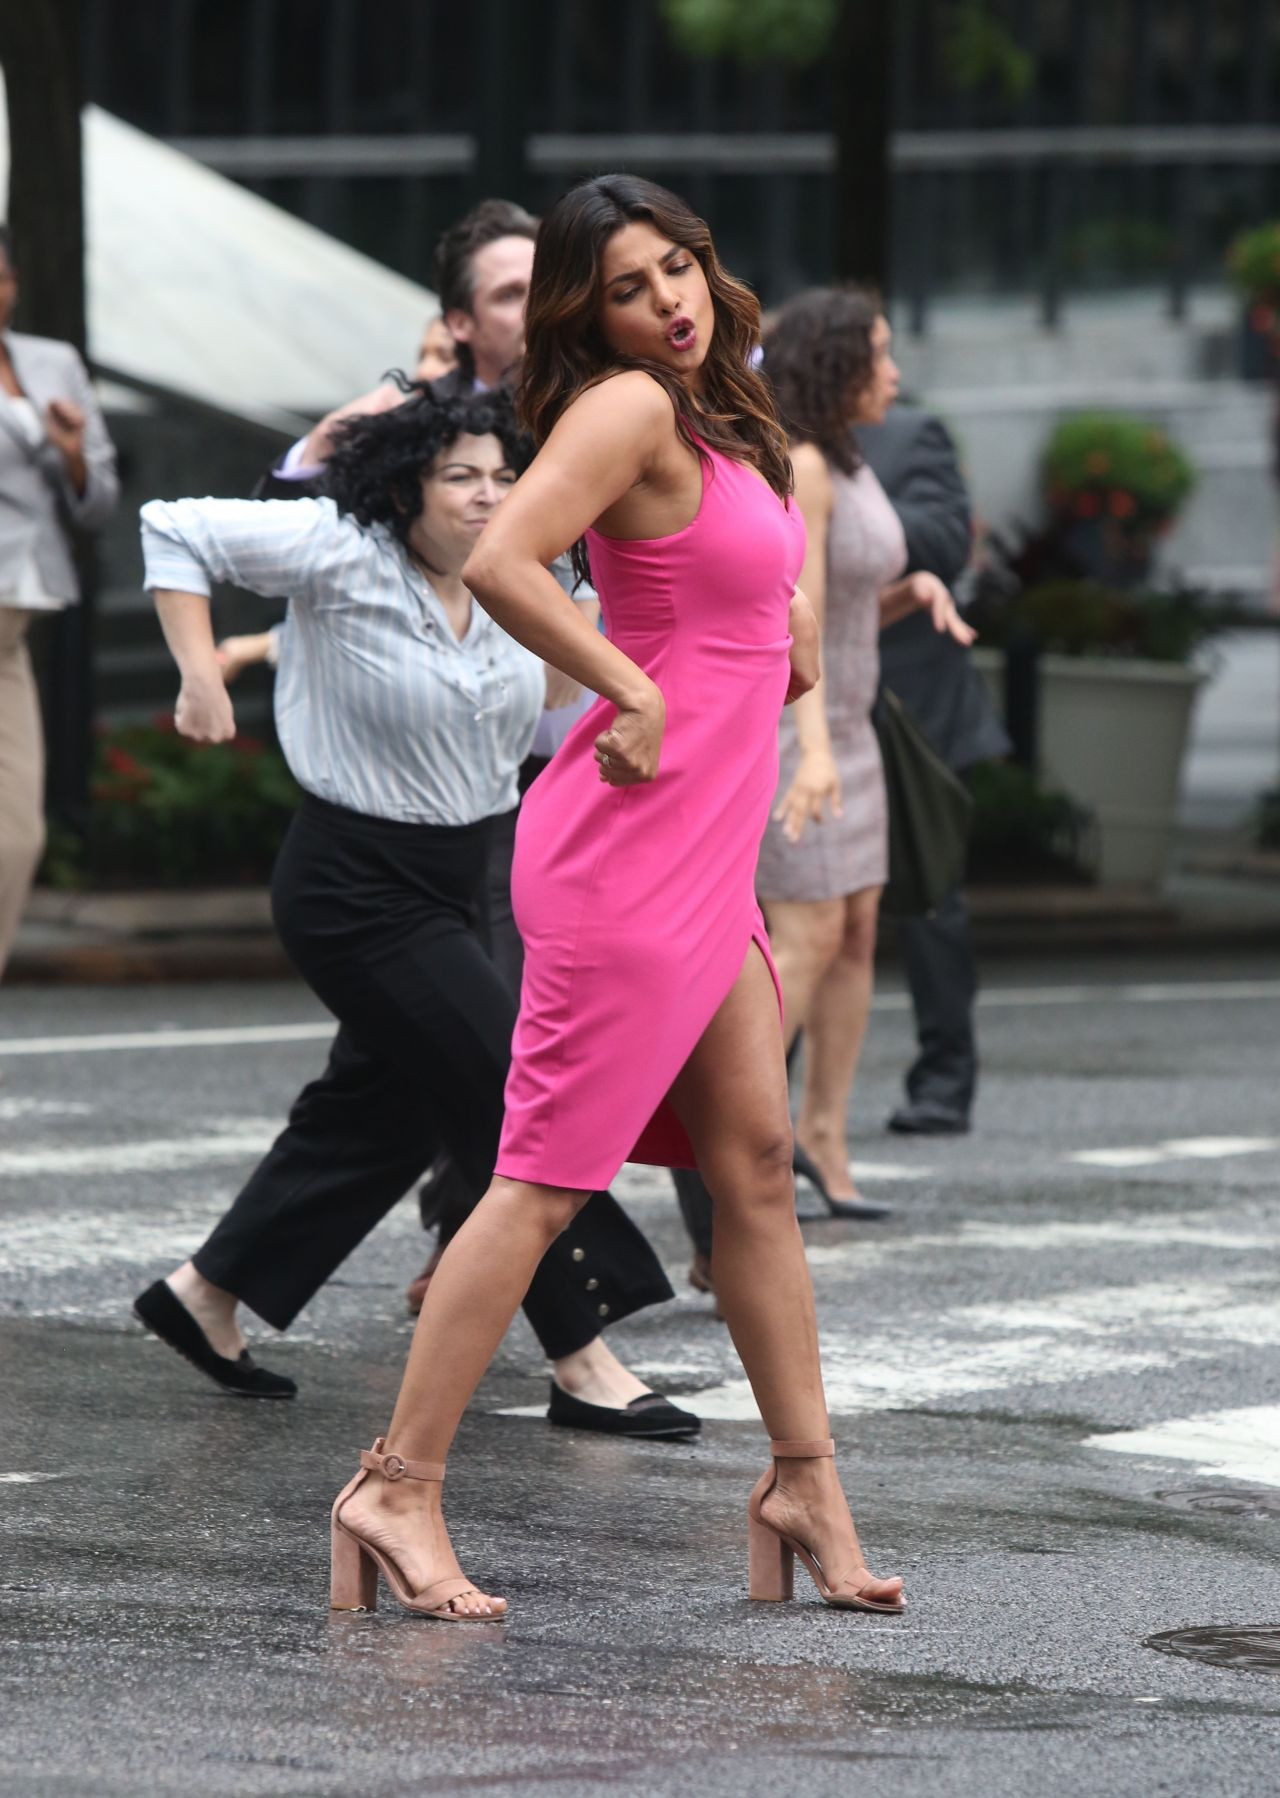 https://celebmafia.com/wp-content/uploads/2018/07/priyanka-chopra-liam-hemsworth-rebel-wilson-adam-devine-and-betty-gilpin-filming-a-dance-scene-for-isn-t-it-romantic-in-ny-15.jpg